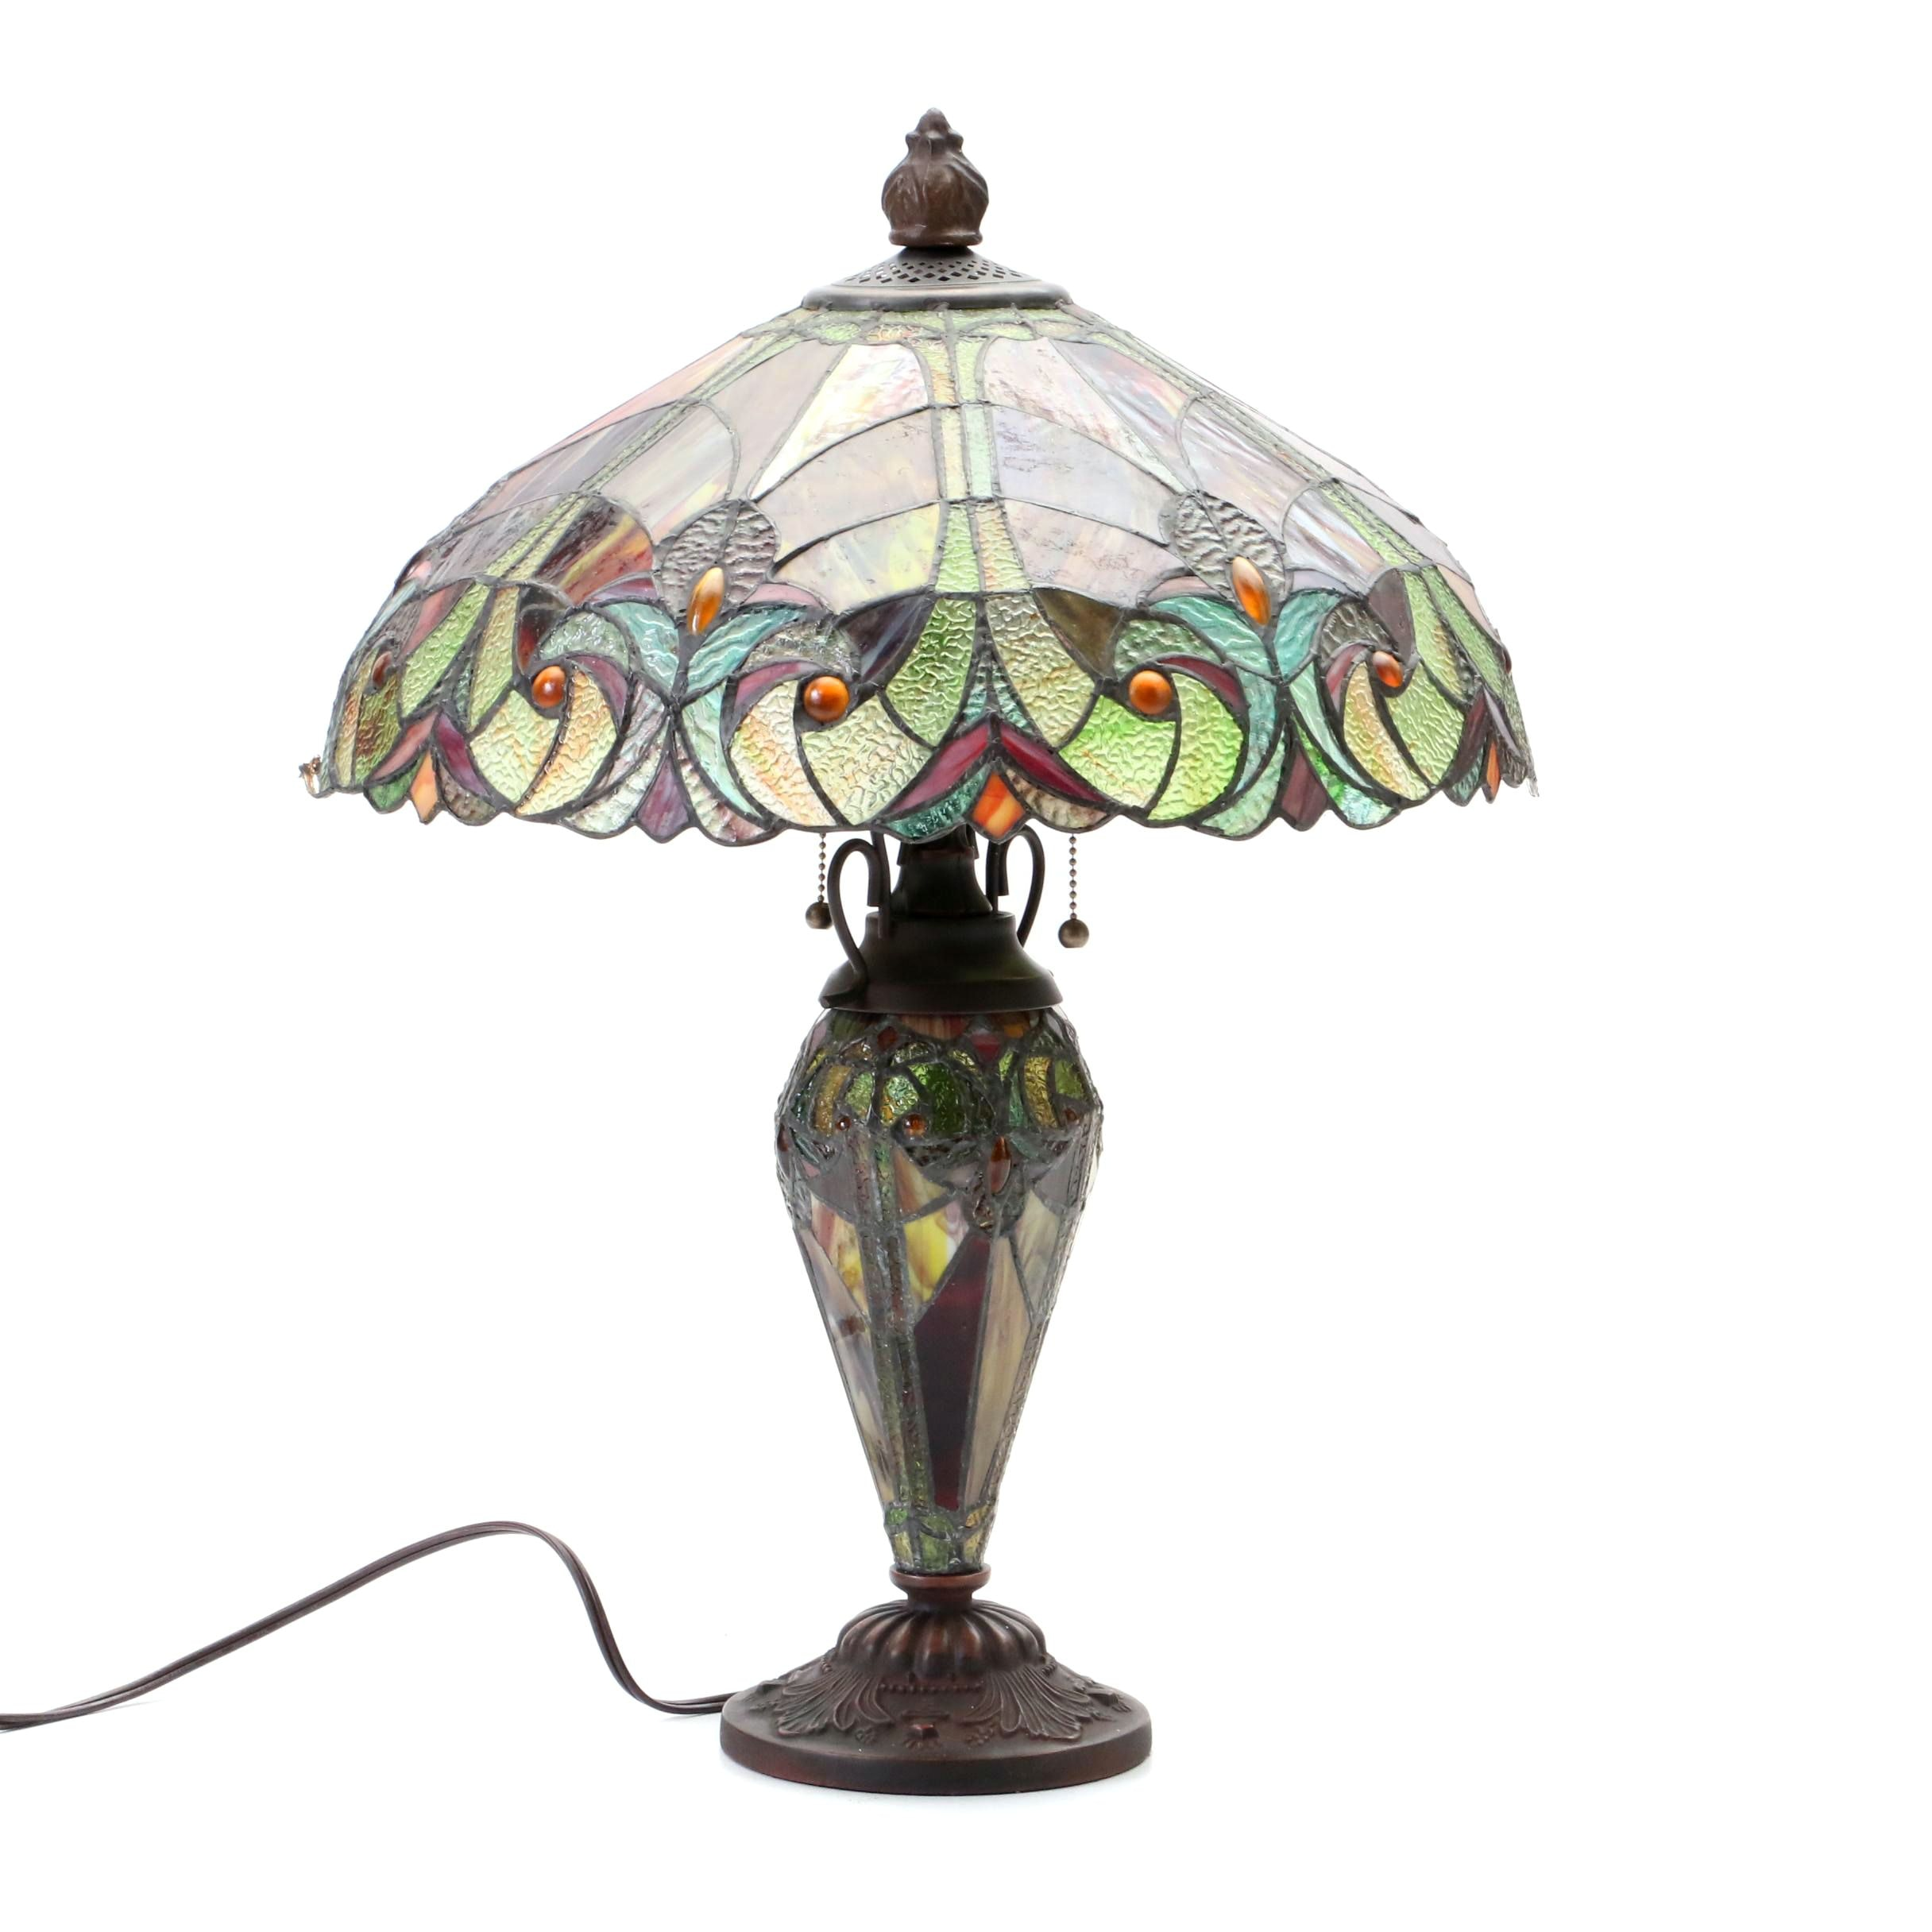 Contemporary Slag and Stained Glass Table Lamp